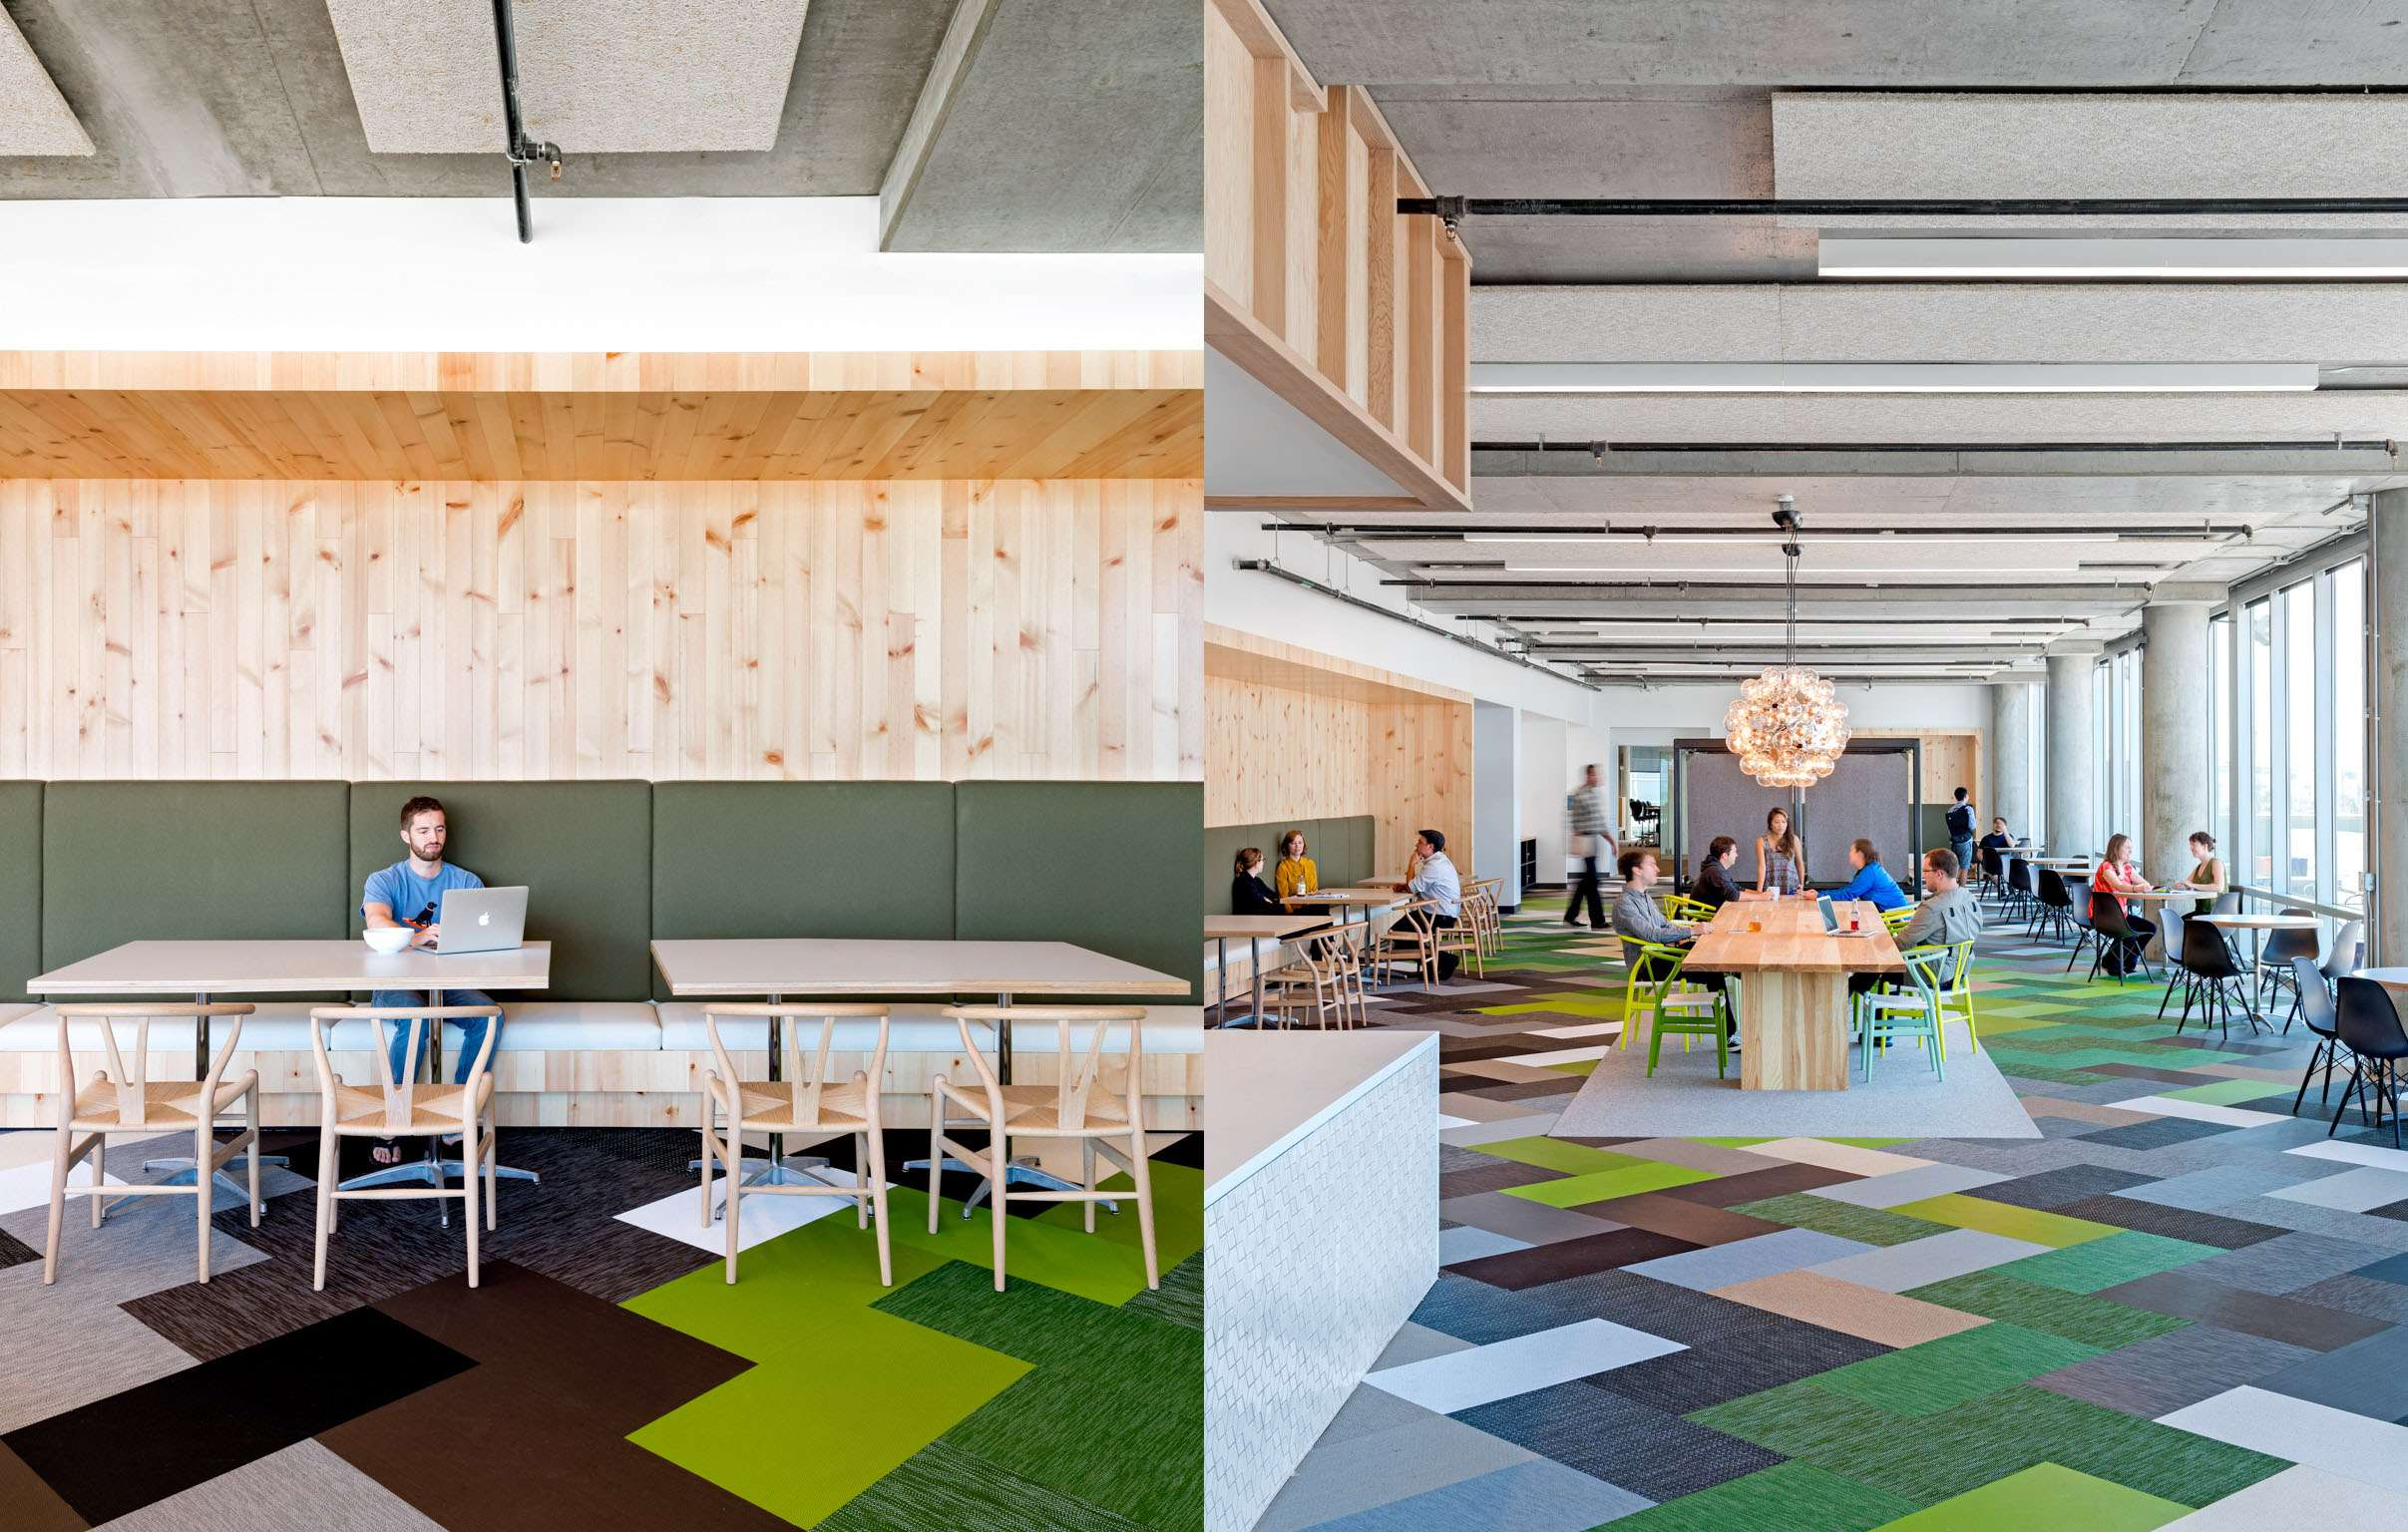 Bolon floor tiles in the office of Cisco Meraki in San Francisco, USA